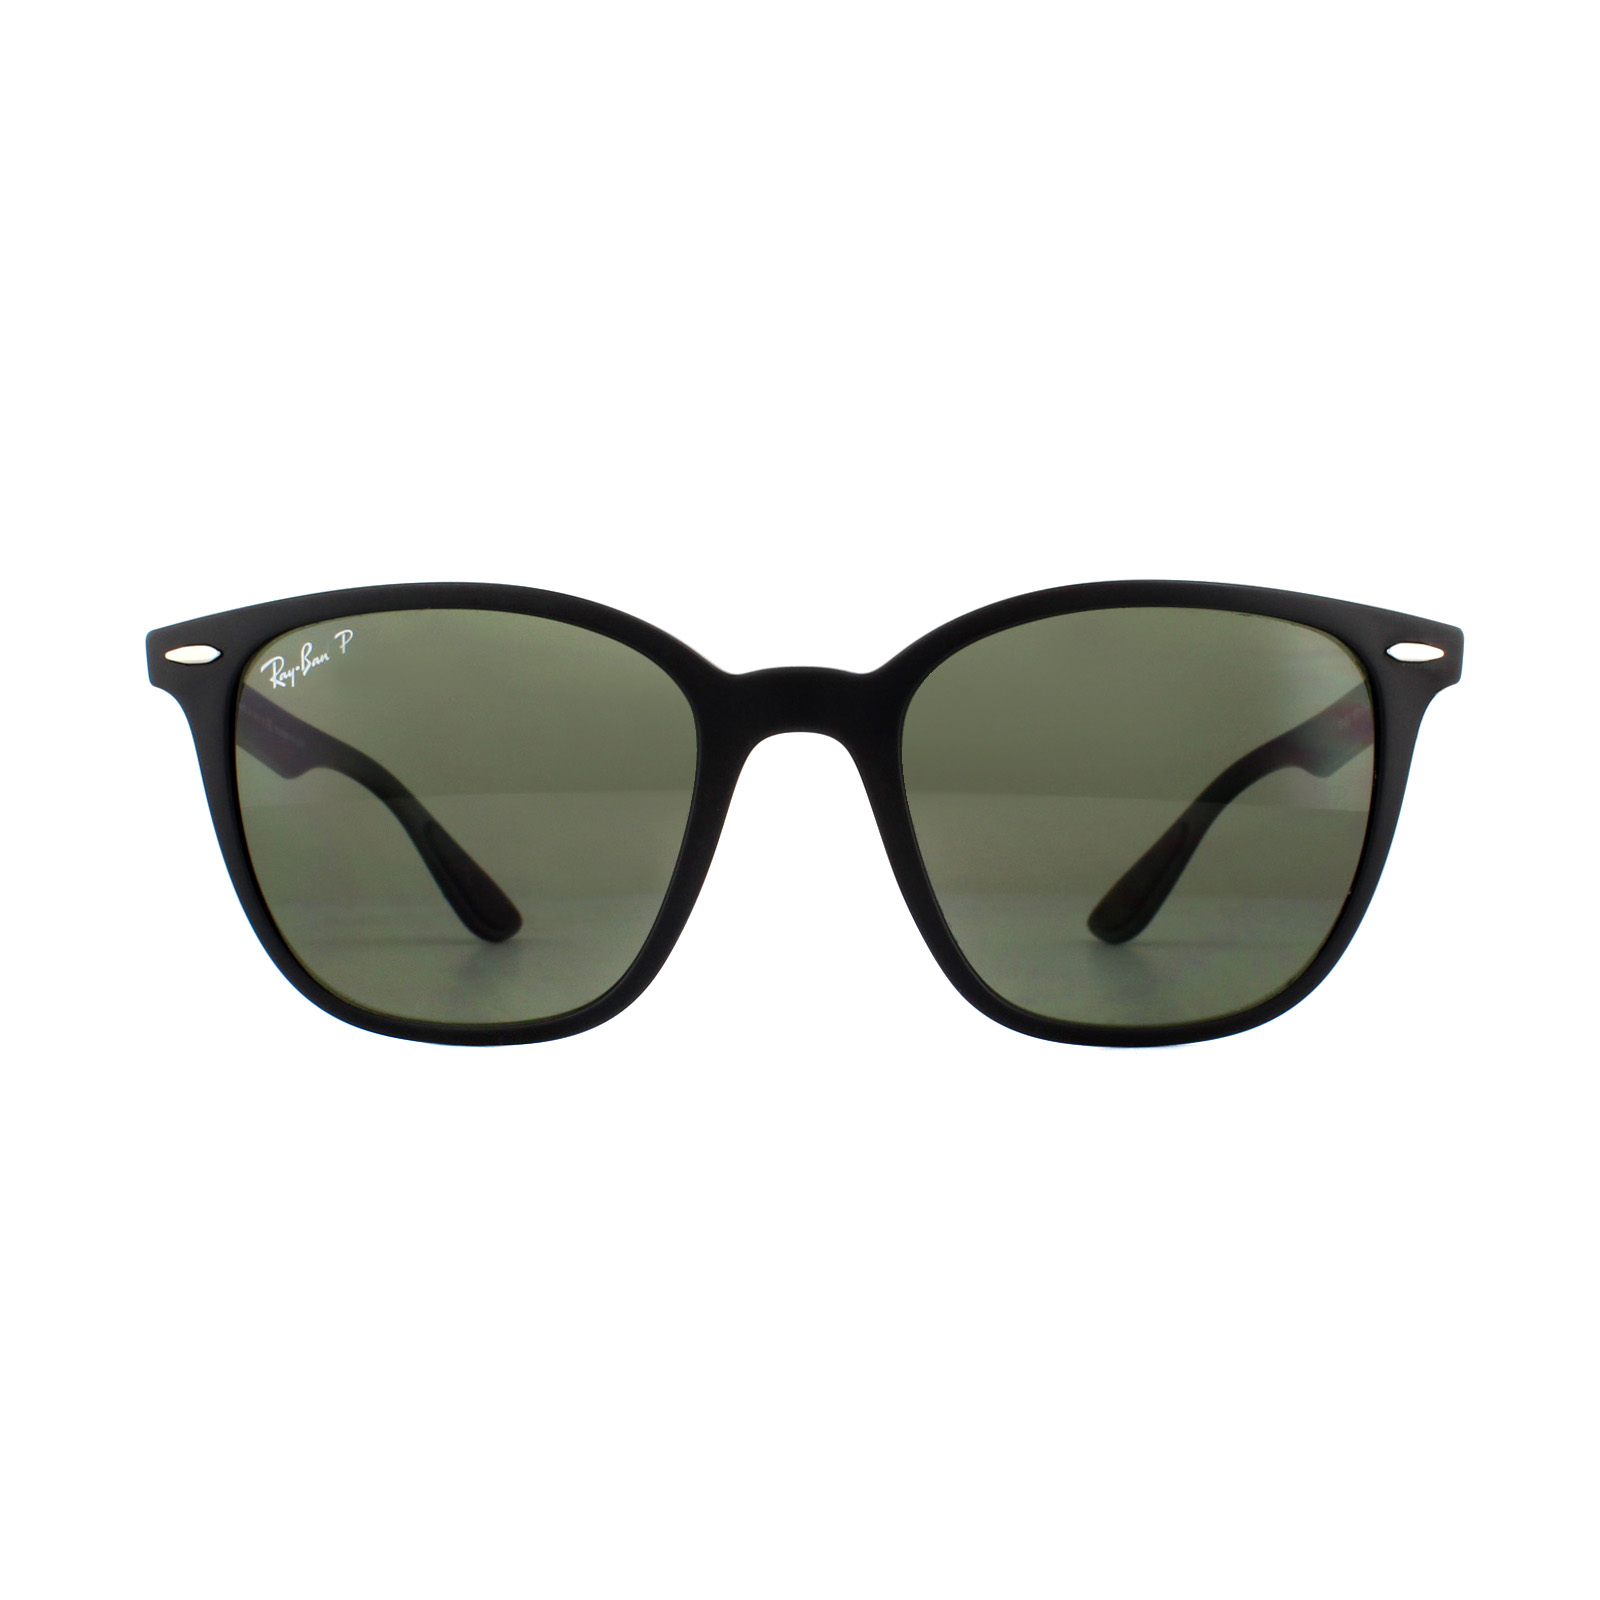 eadf728d068 Sentinel Ray-Ban Sunglasses RB4297 601S9A Matte Black Green Polarized